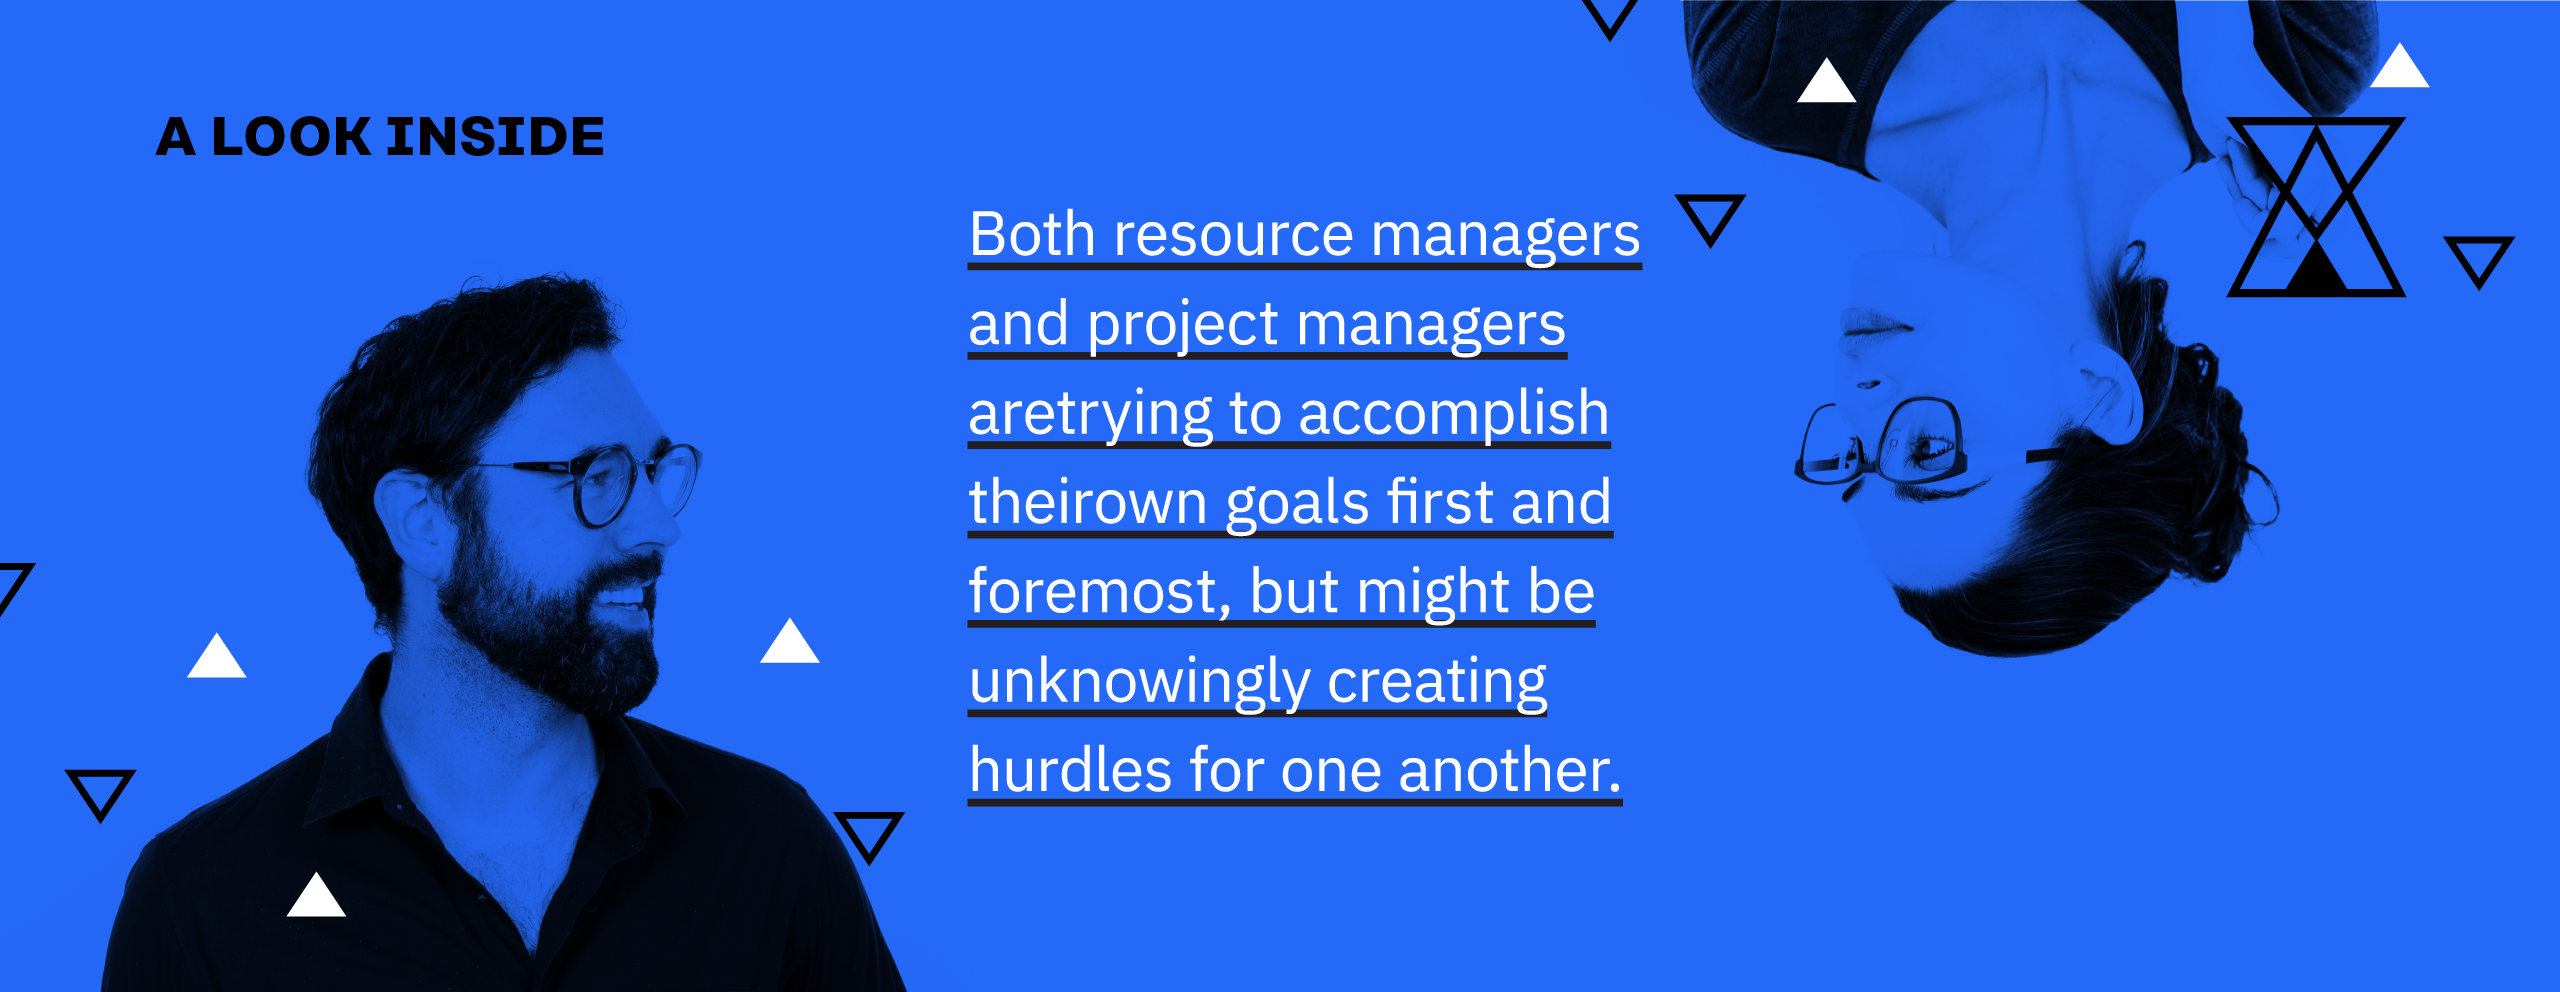 Project managers are creating unknown hurdles